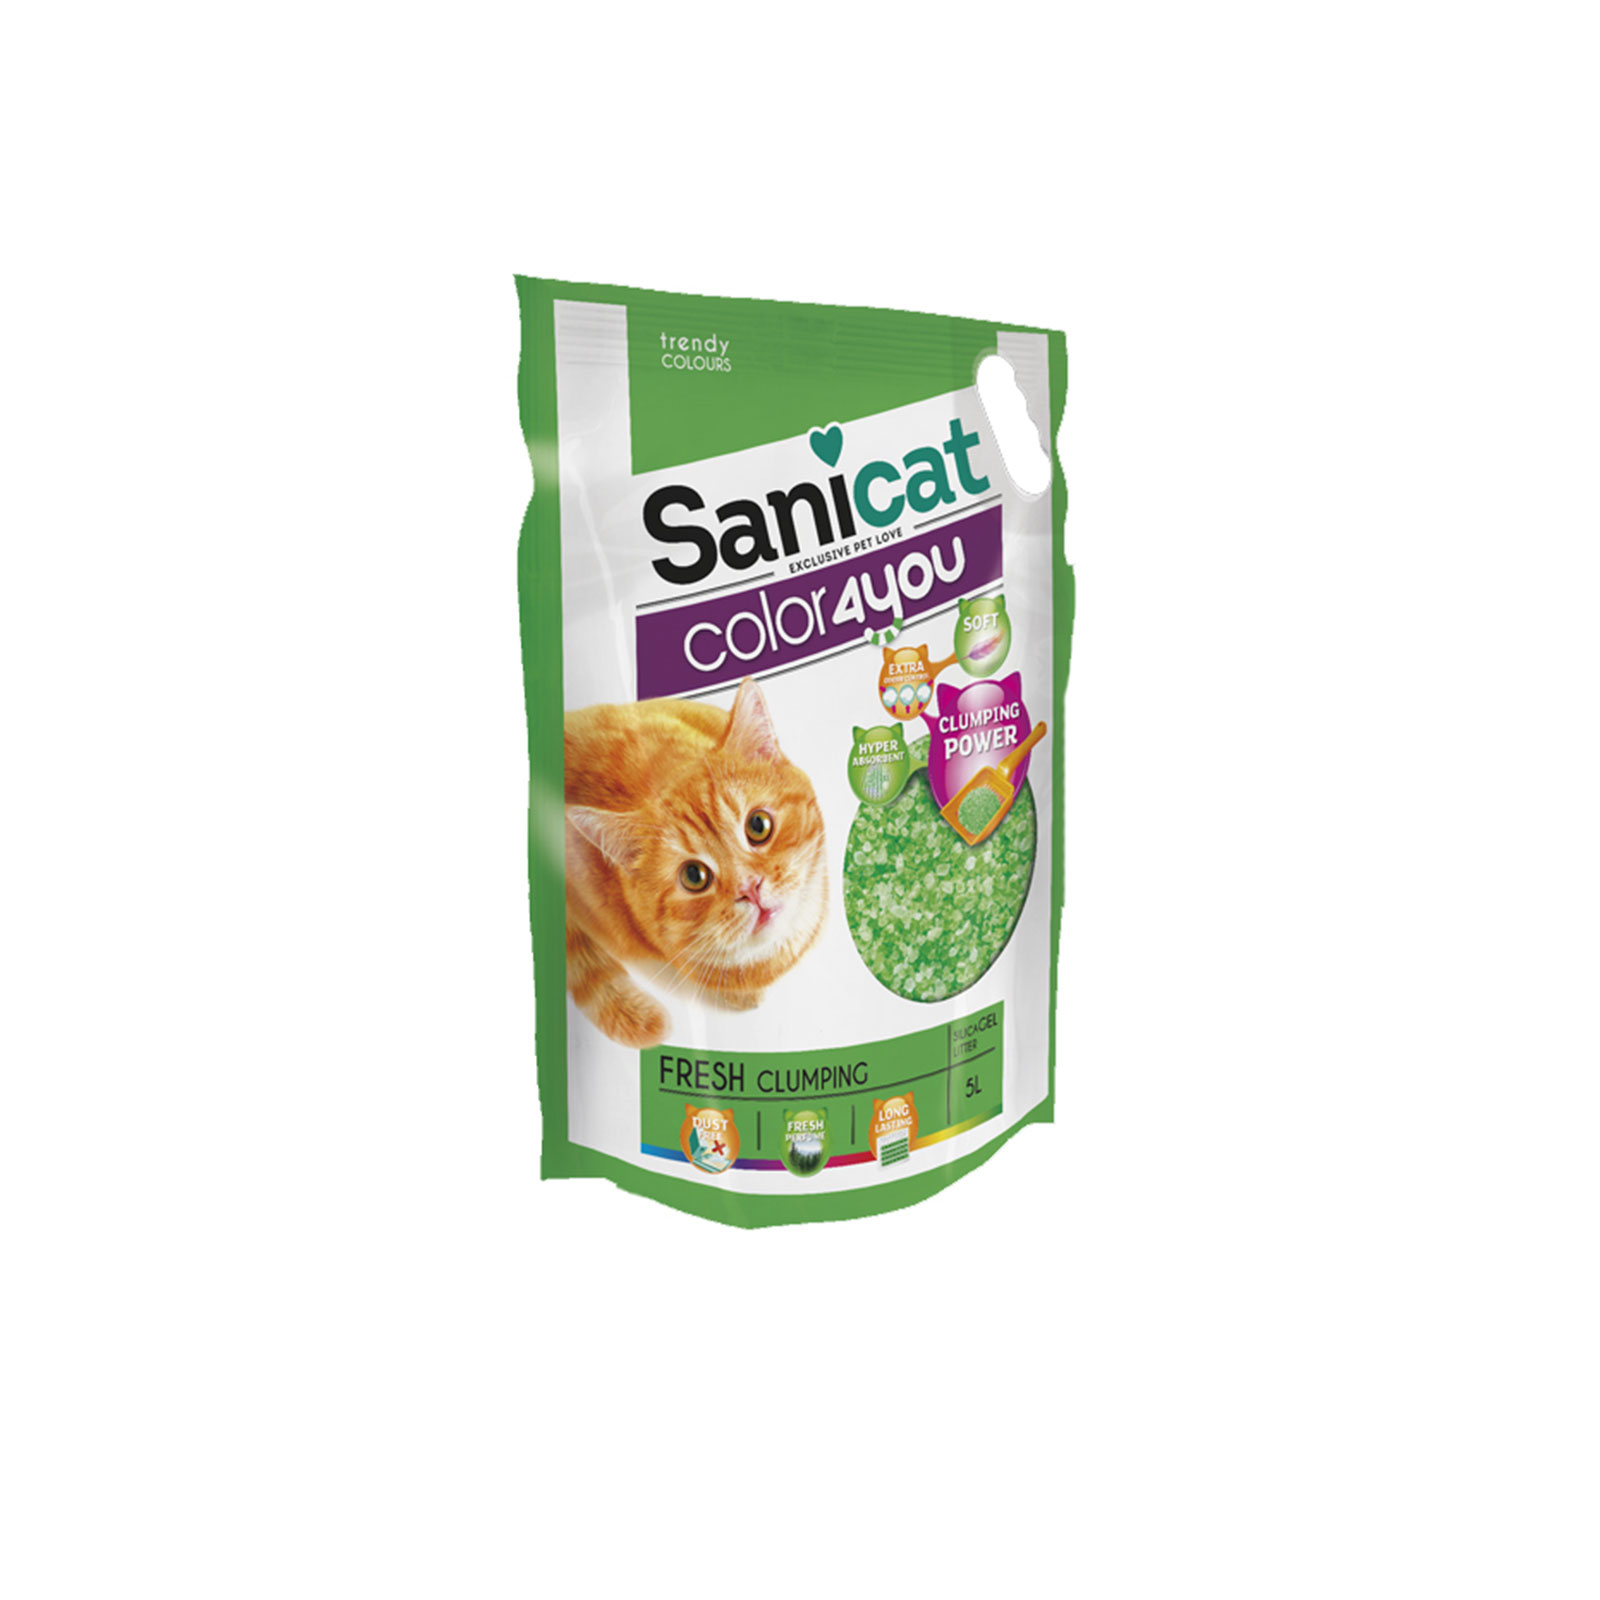 Sanicat - Color 4 you green - Posip za mačke, silikonski, grudvajći, zeleni